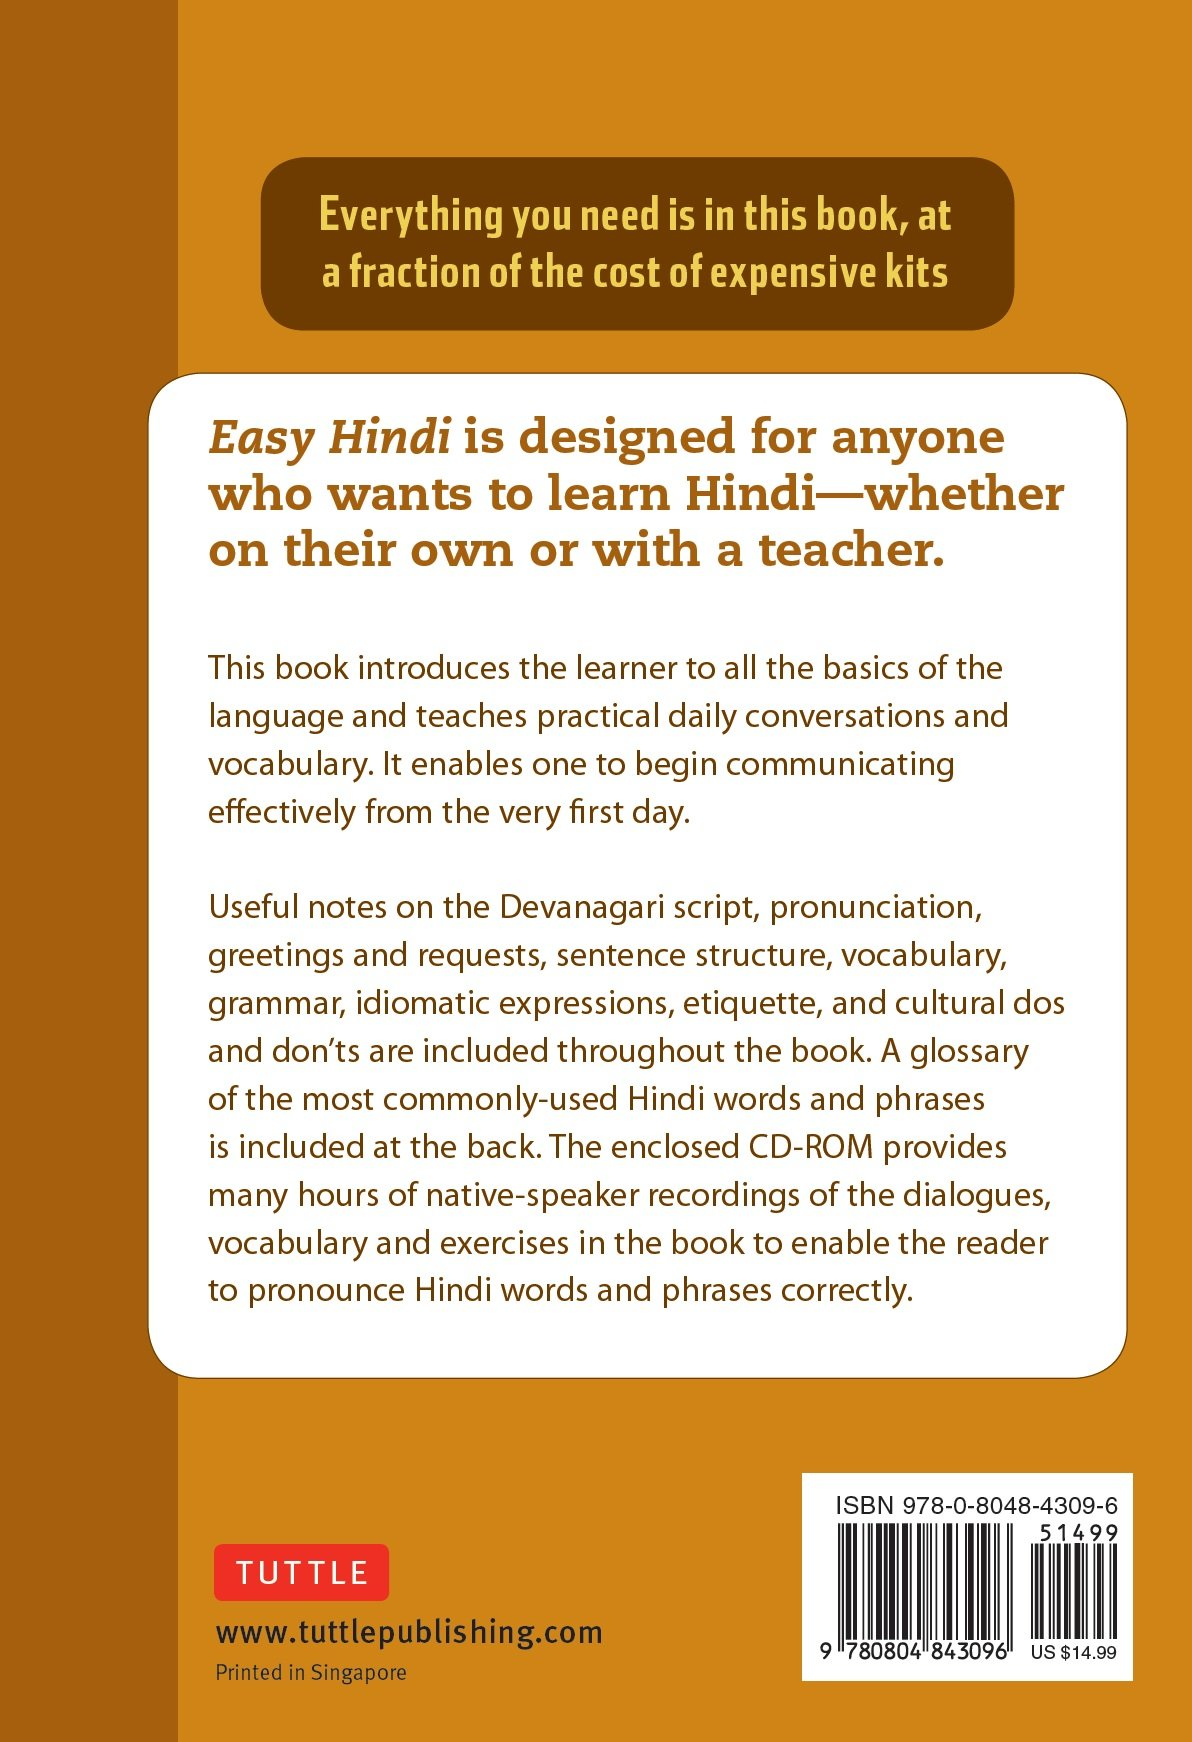 Easy Hindi A Complete Language Course And Pocket Dictionary In One